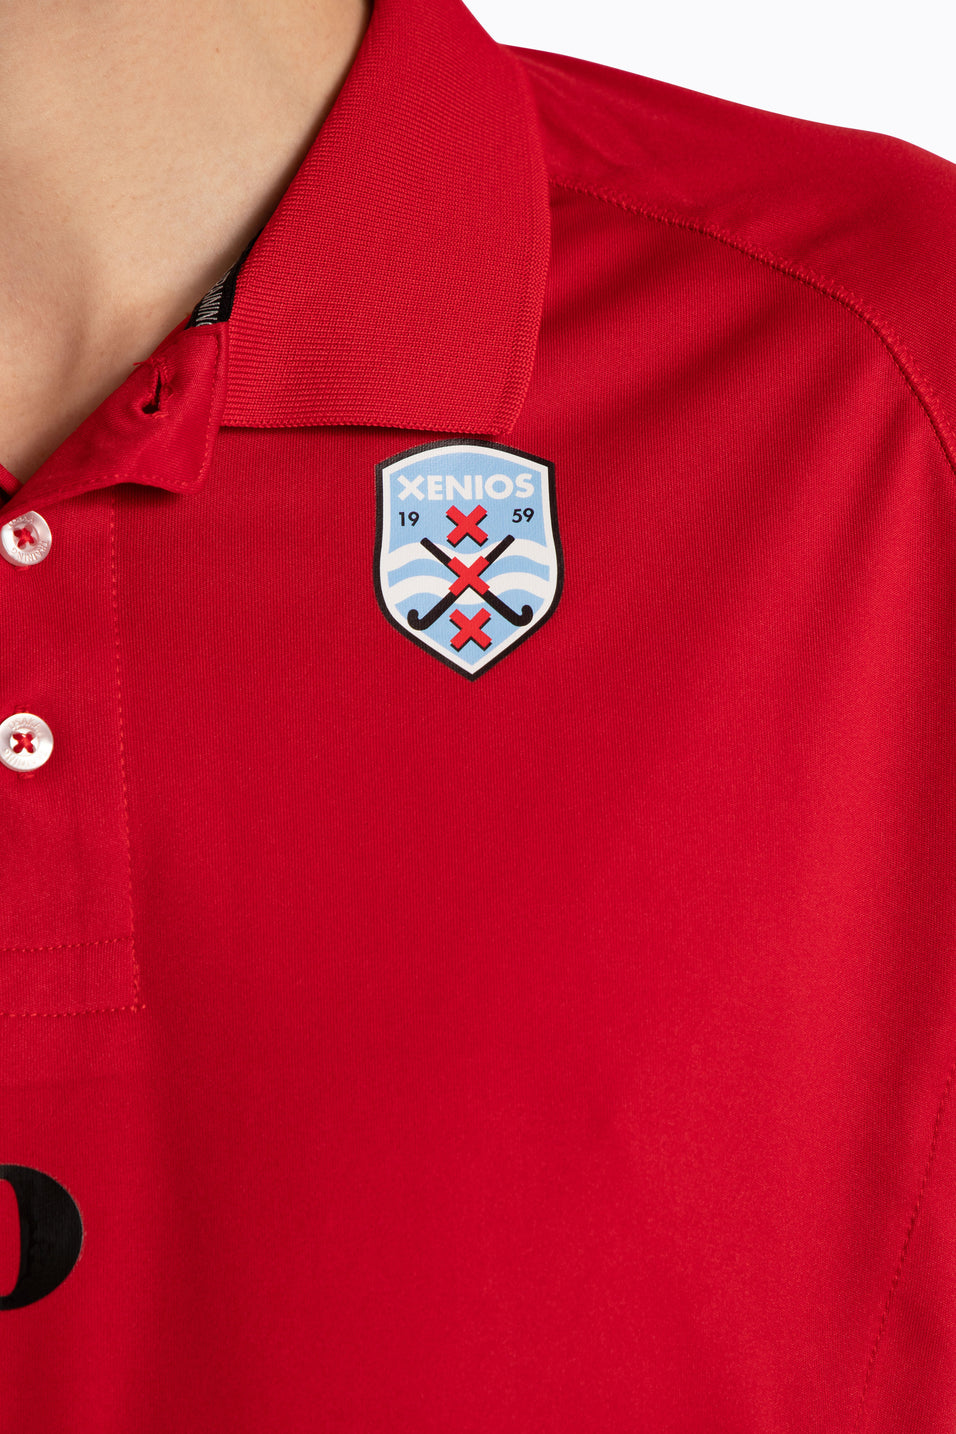 Xenios Men Polo Jersey - Red